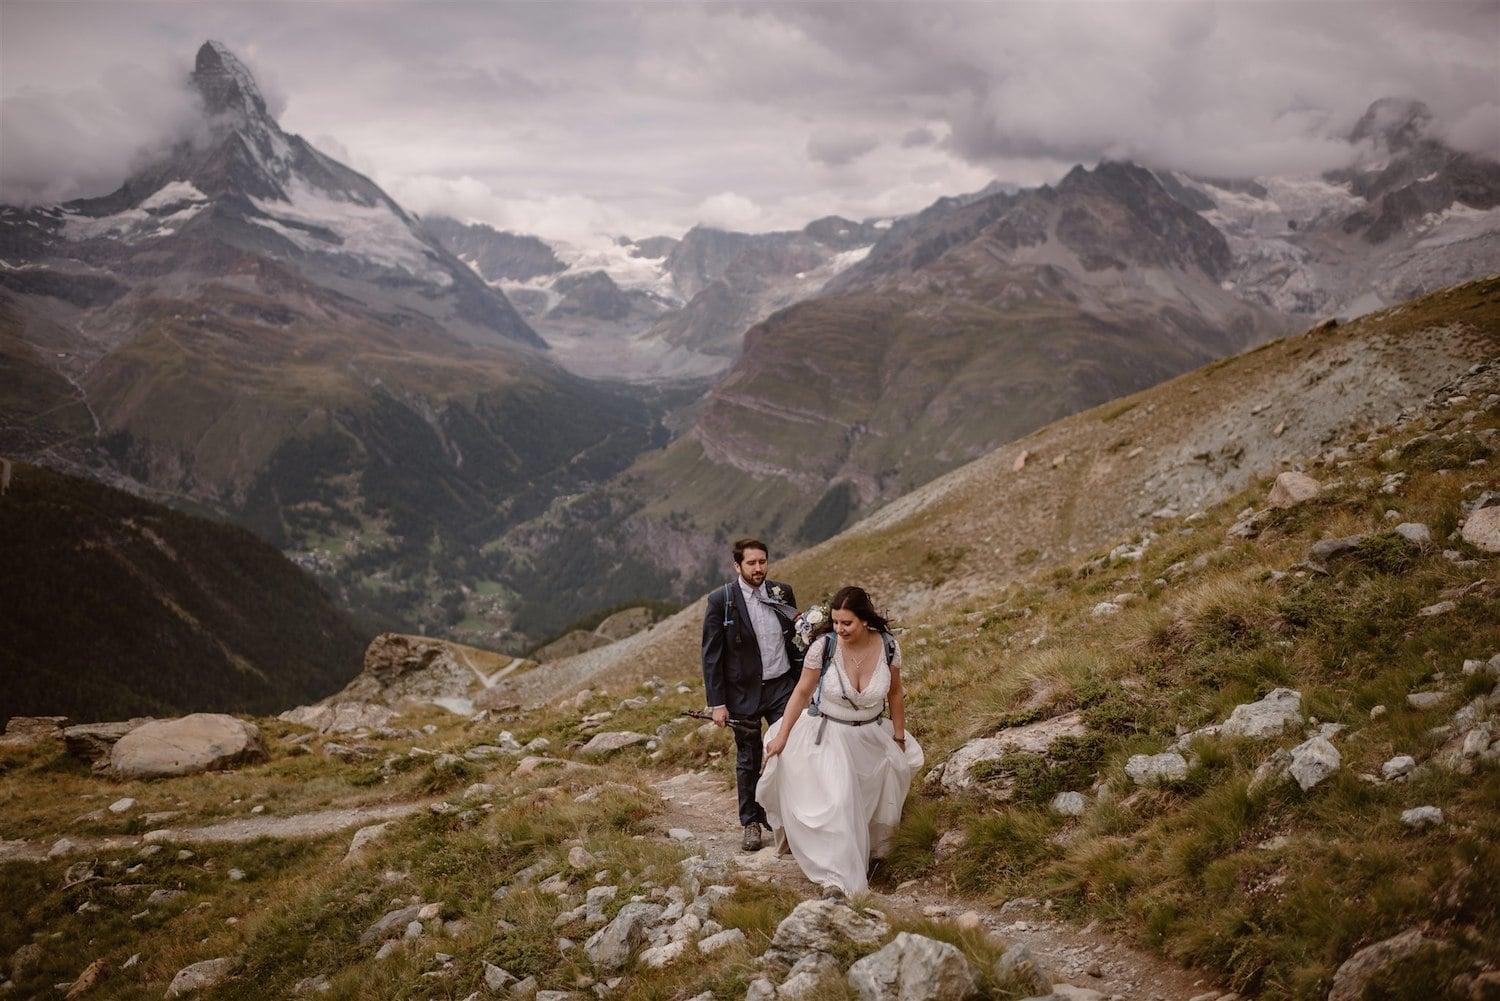 An elopement in the Swiss mountains in Zermatt, Switzerland